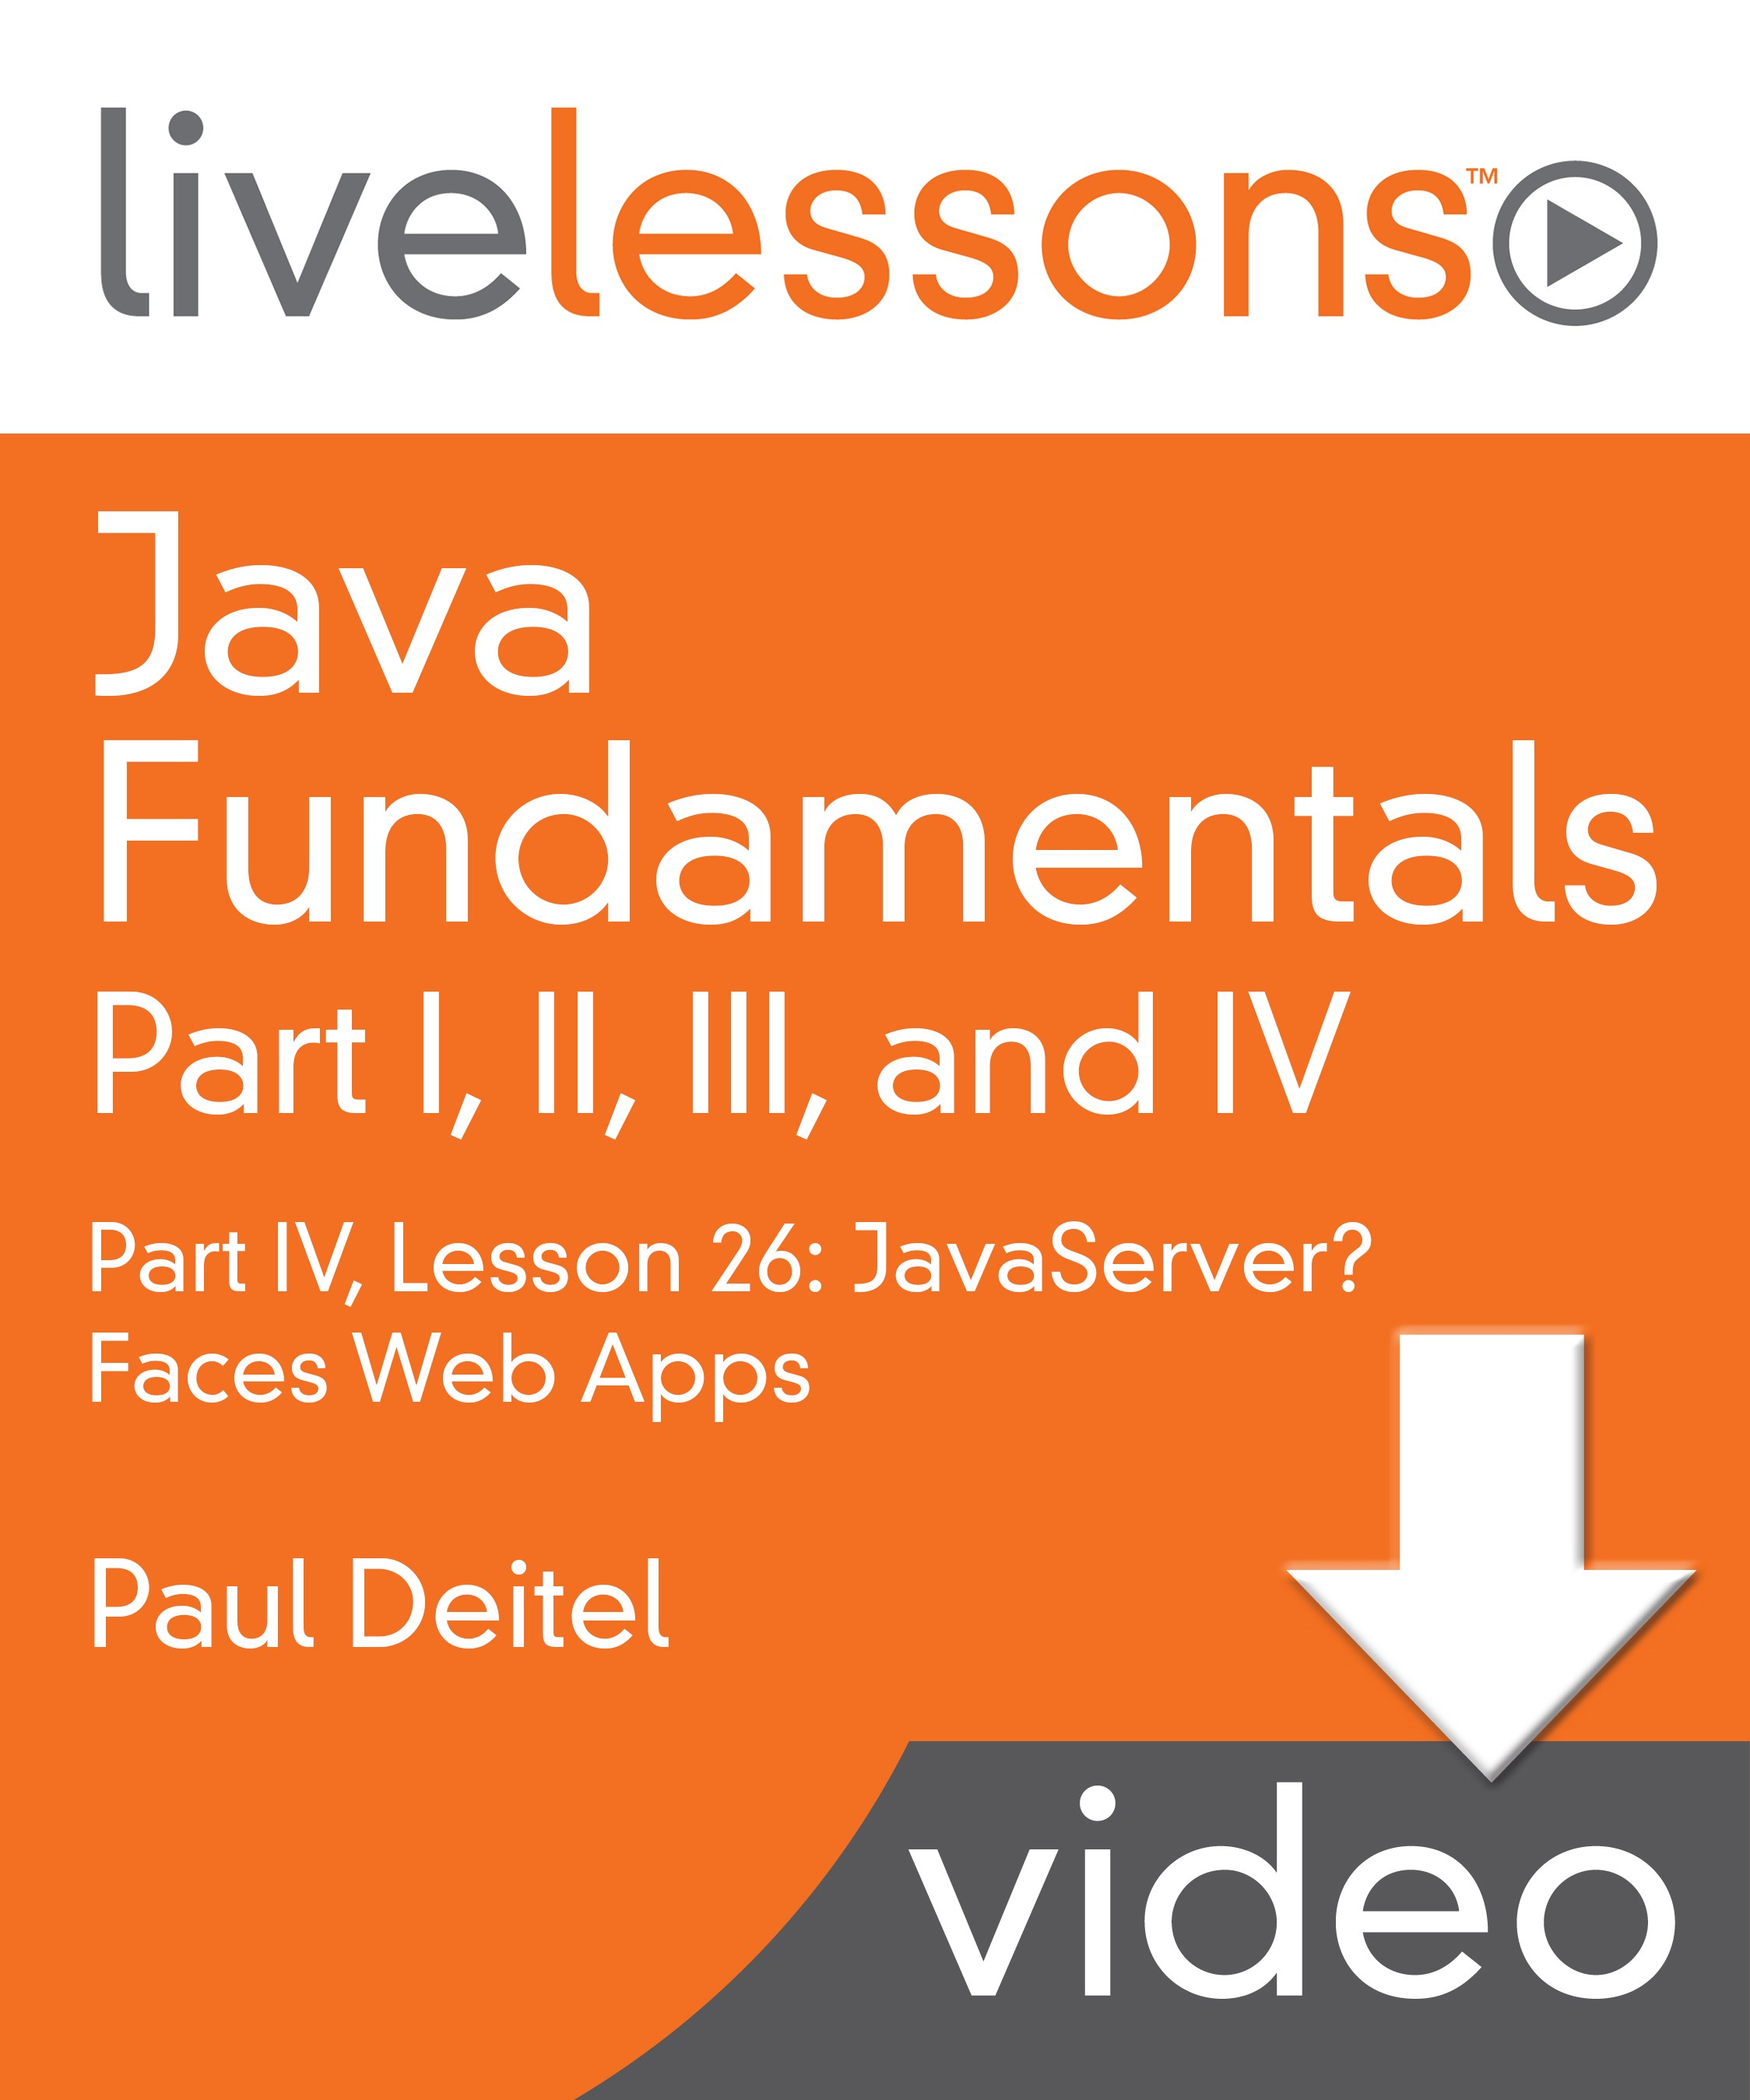 Java Fundamentals LiveLessons Parts I, II, III, and IV (Video Training): Part IV, Lesson 26: JavaServer? Faces Web Apps: Part 1, Downloadable Version